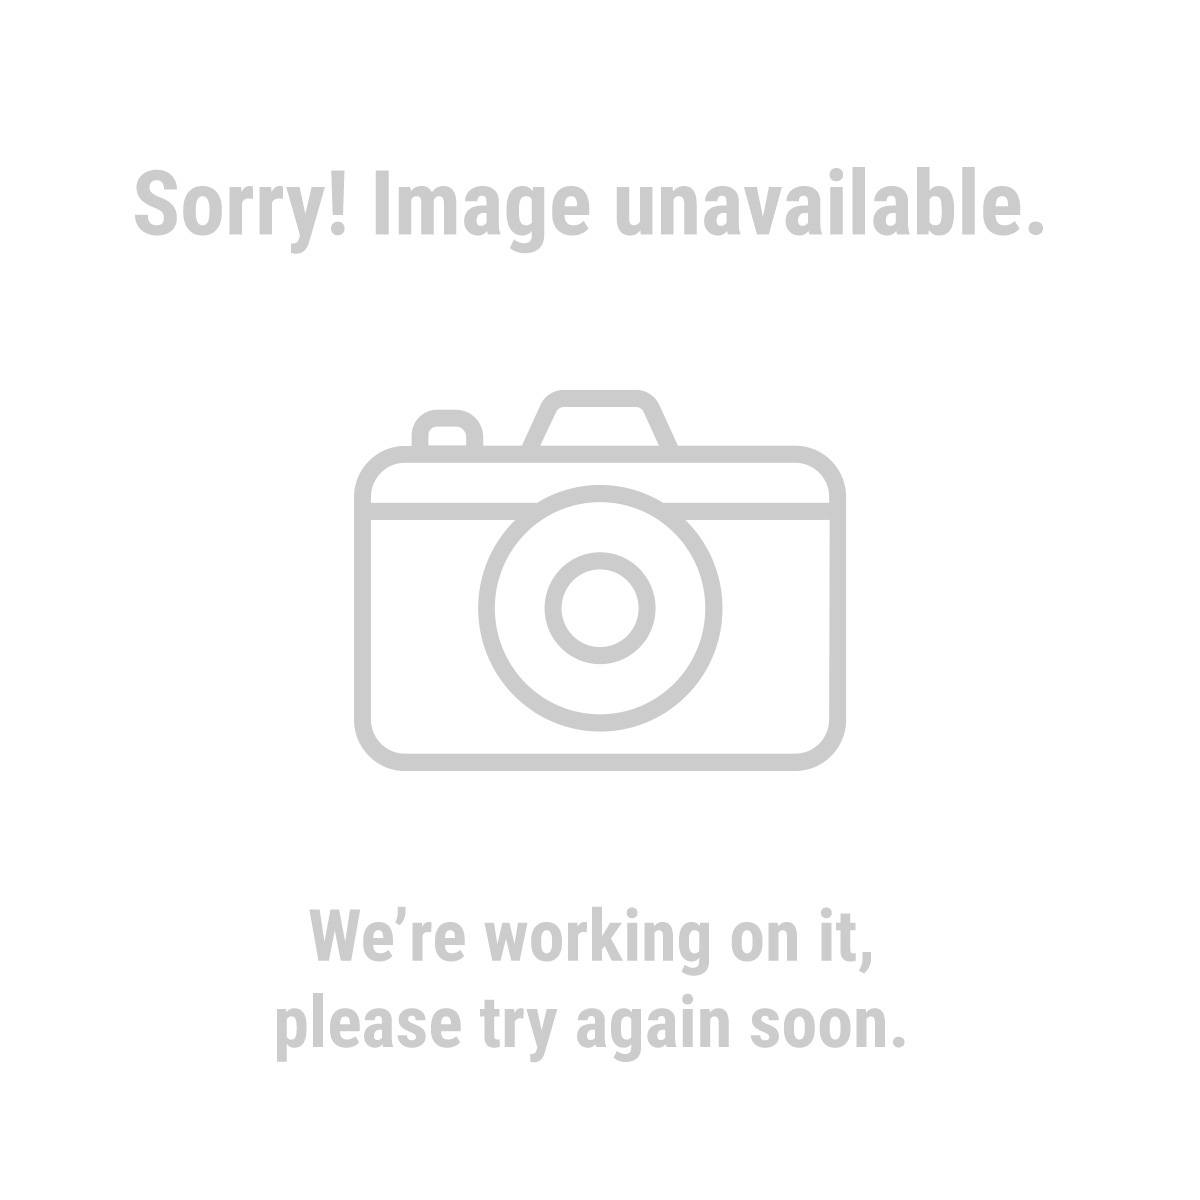 Pittsburgh® Automotive 66480 12 Ton Heavy Duty Industrial Hydraulic Bottle Jack